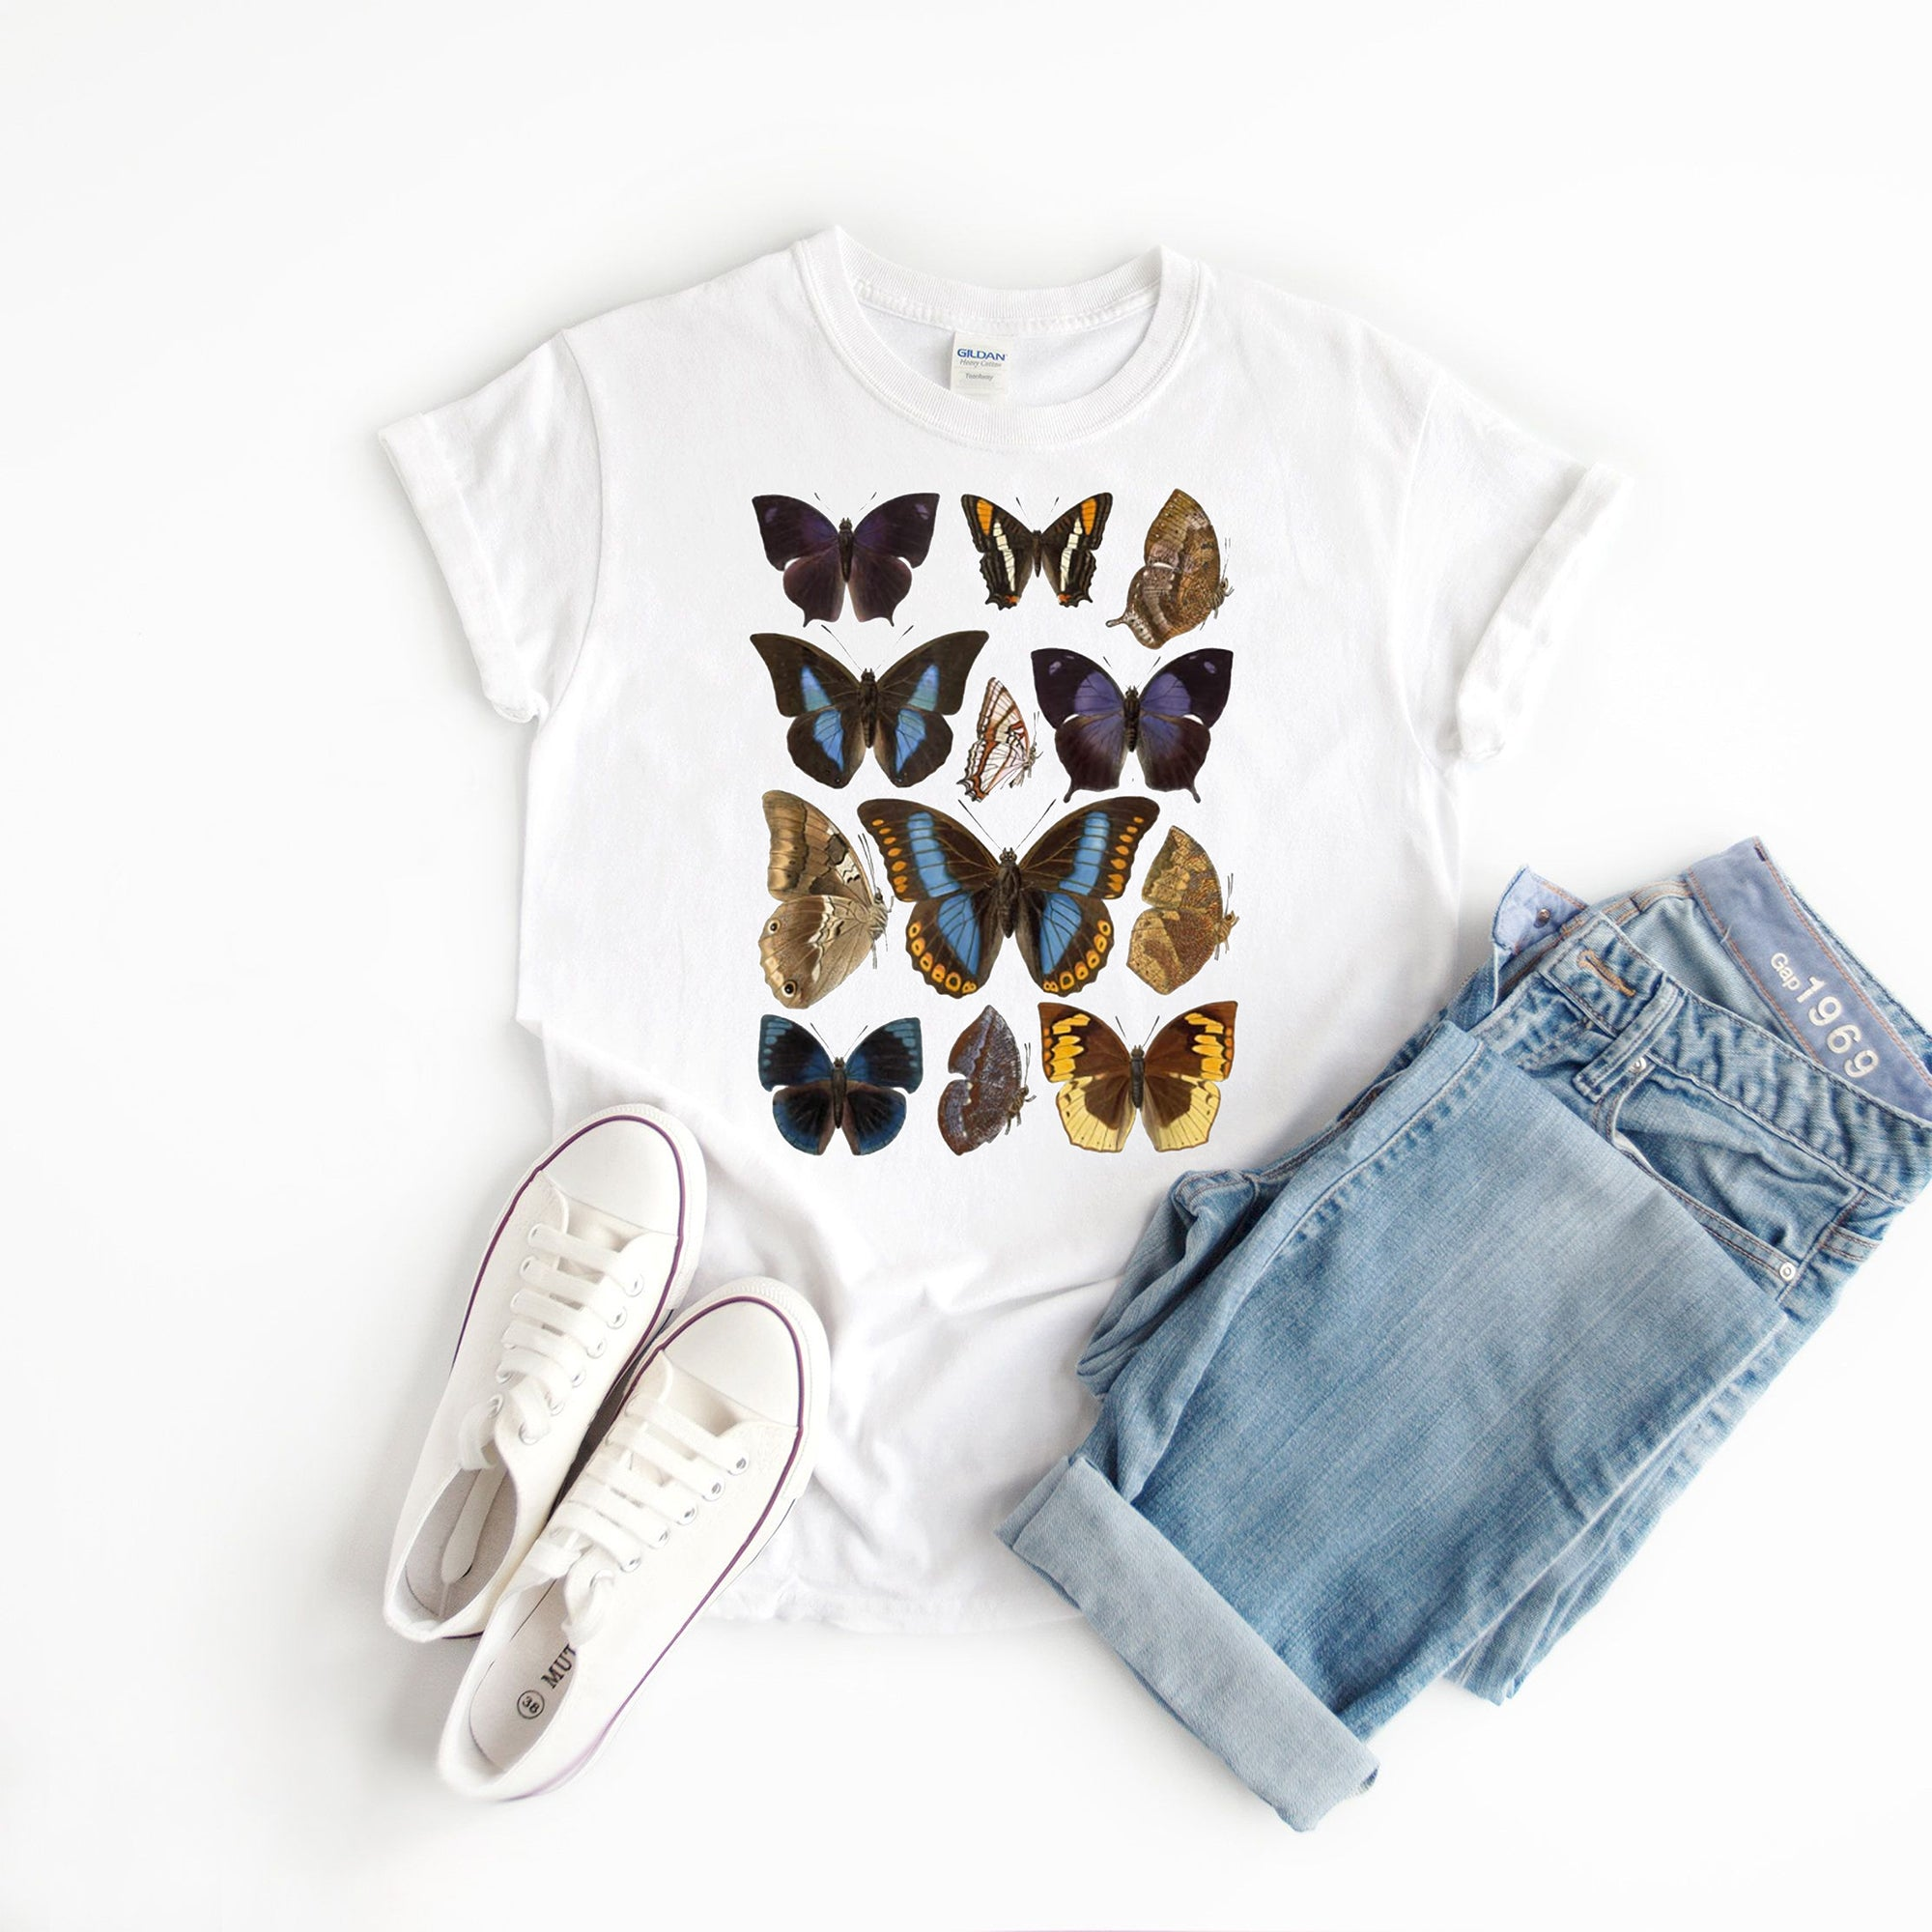 Vintage Botanical Butterfly Species T-Shirt